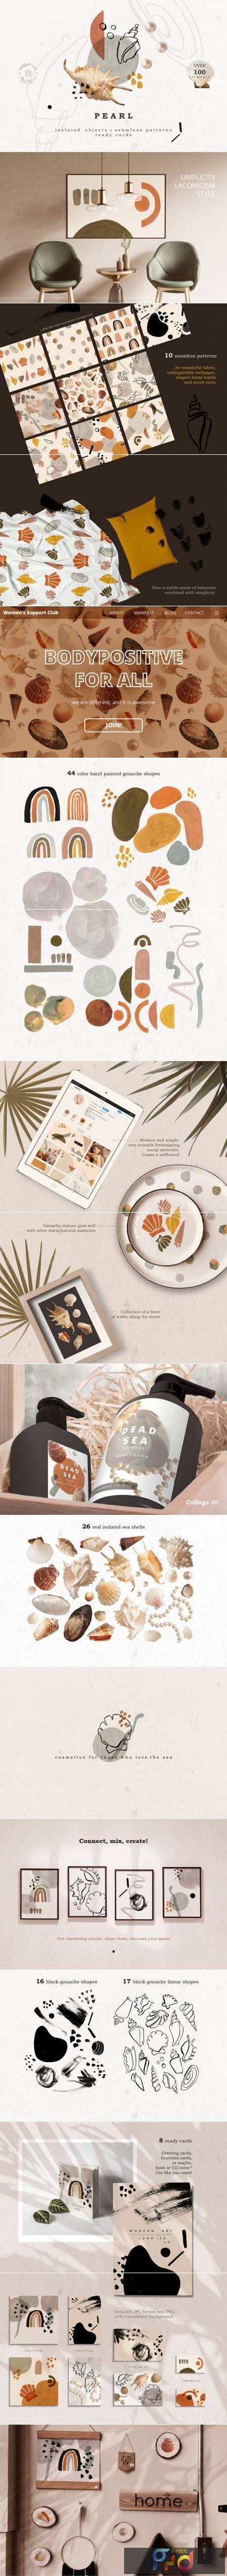 Pearl Graphic Collection 3975699 1